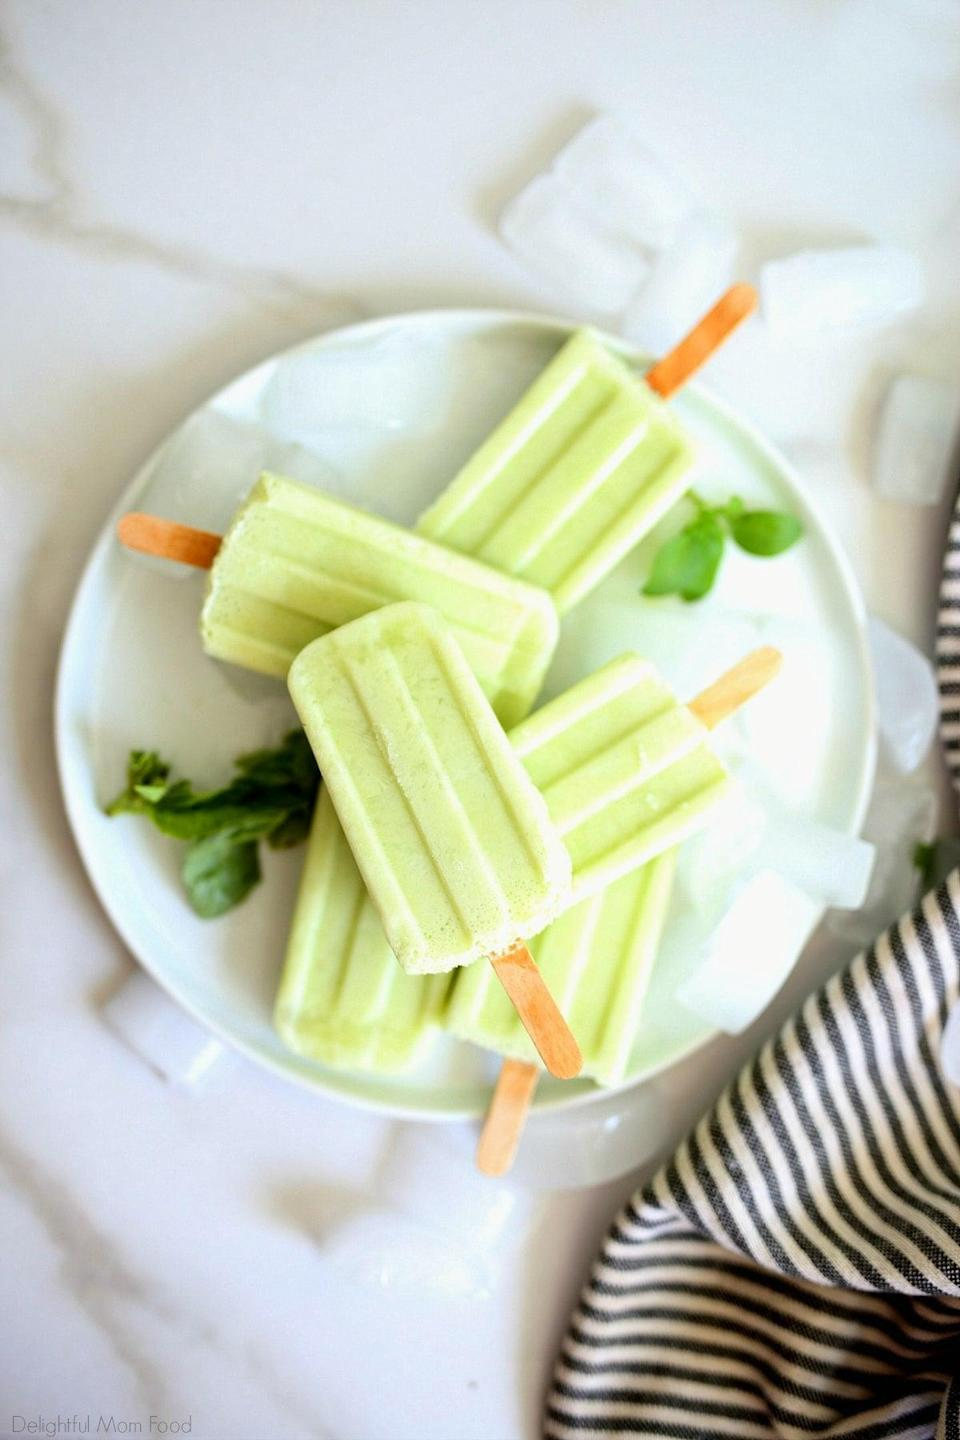 """<p>If you're craving something zesty and fresh, we recommend these bright green pops. Made with nonfat Greek yogurt and lime juice, these are too good to be true.</p> <p><strong>Get the recipe</strong>: <a href=""""https://delightfulmomfood.com/basil-lemon-popsicle-recipe/"""" class=""""link rapid-noclick-resp"""" rel=""""nofollow noopener"""" target=""""_blank"""" data-ylk=""""slk:basil lemon popsicles"""">basil lemon popsicles</a></p>"""